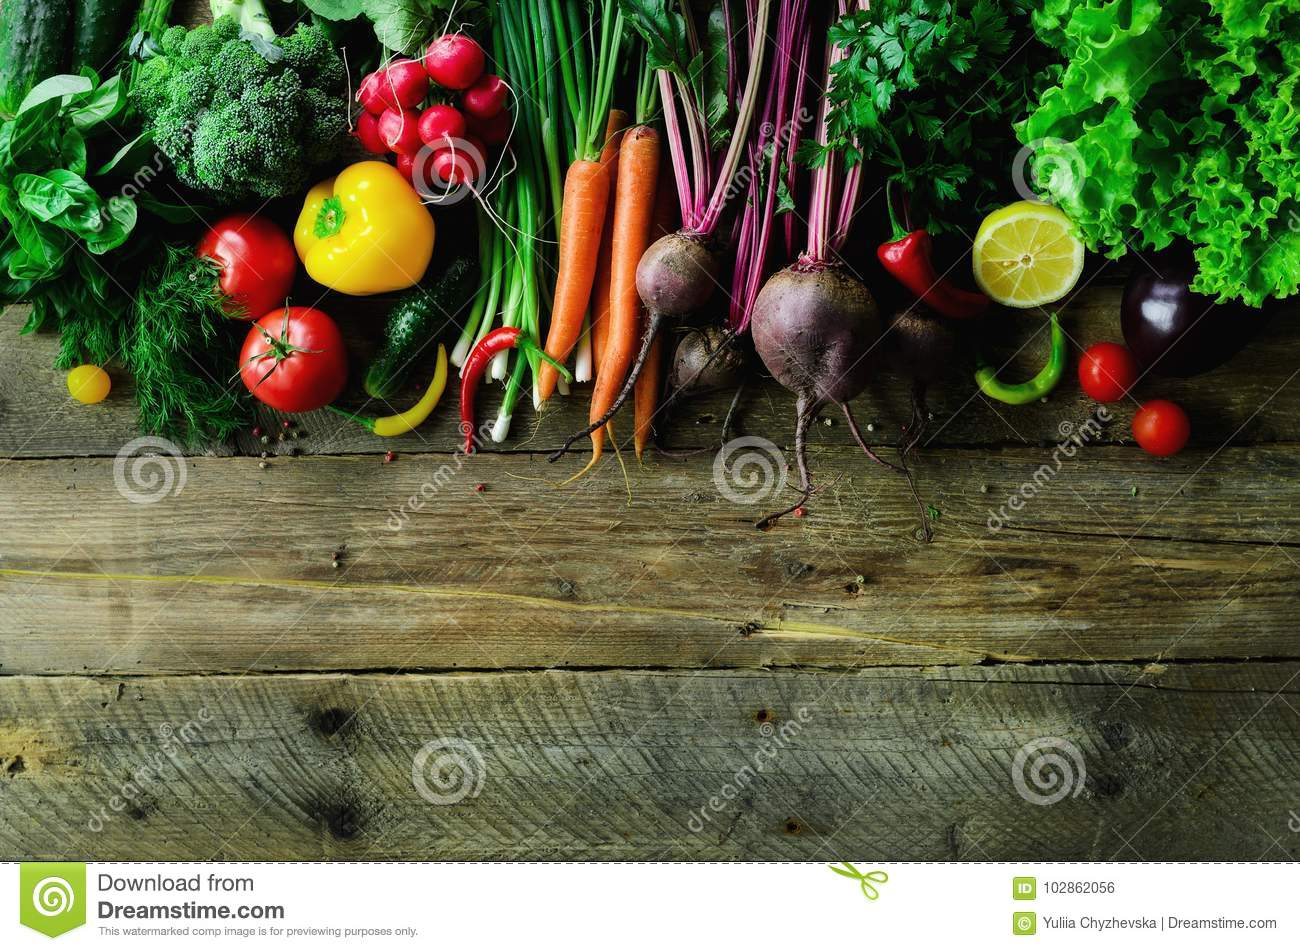 Vegetables on wooden background. Bio healthy organic food, herbs and spices. Raw and vegetarian concept. Ingredients